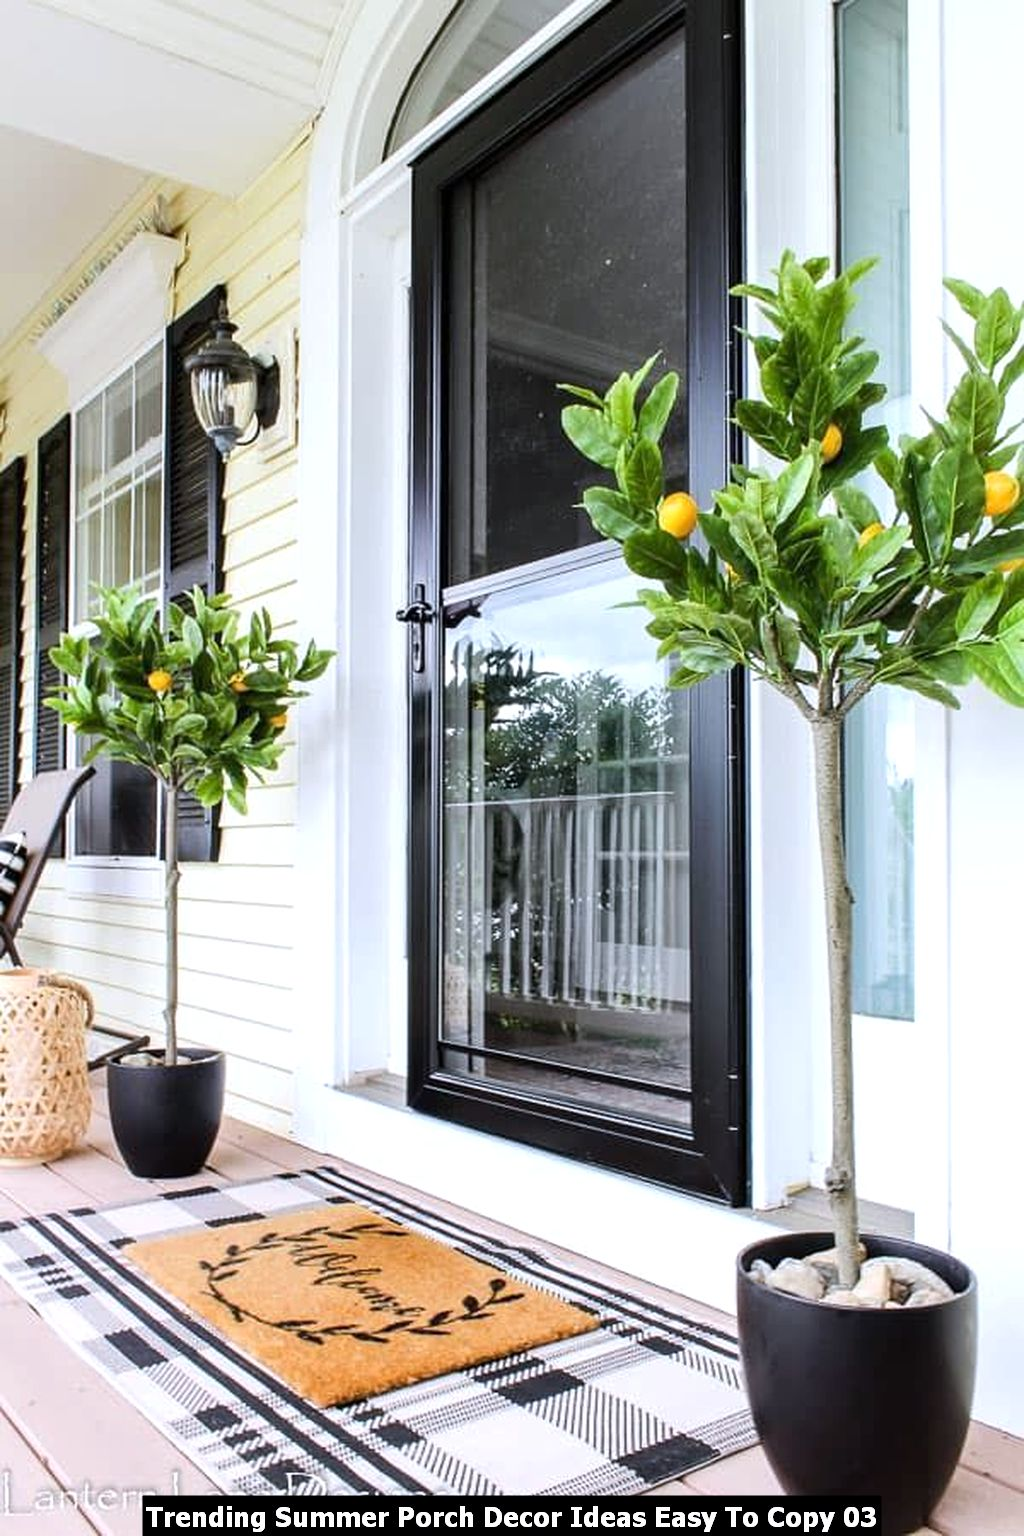 Trending Summer Porch Decor Ideas Easy To Copy 03